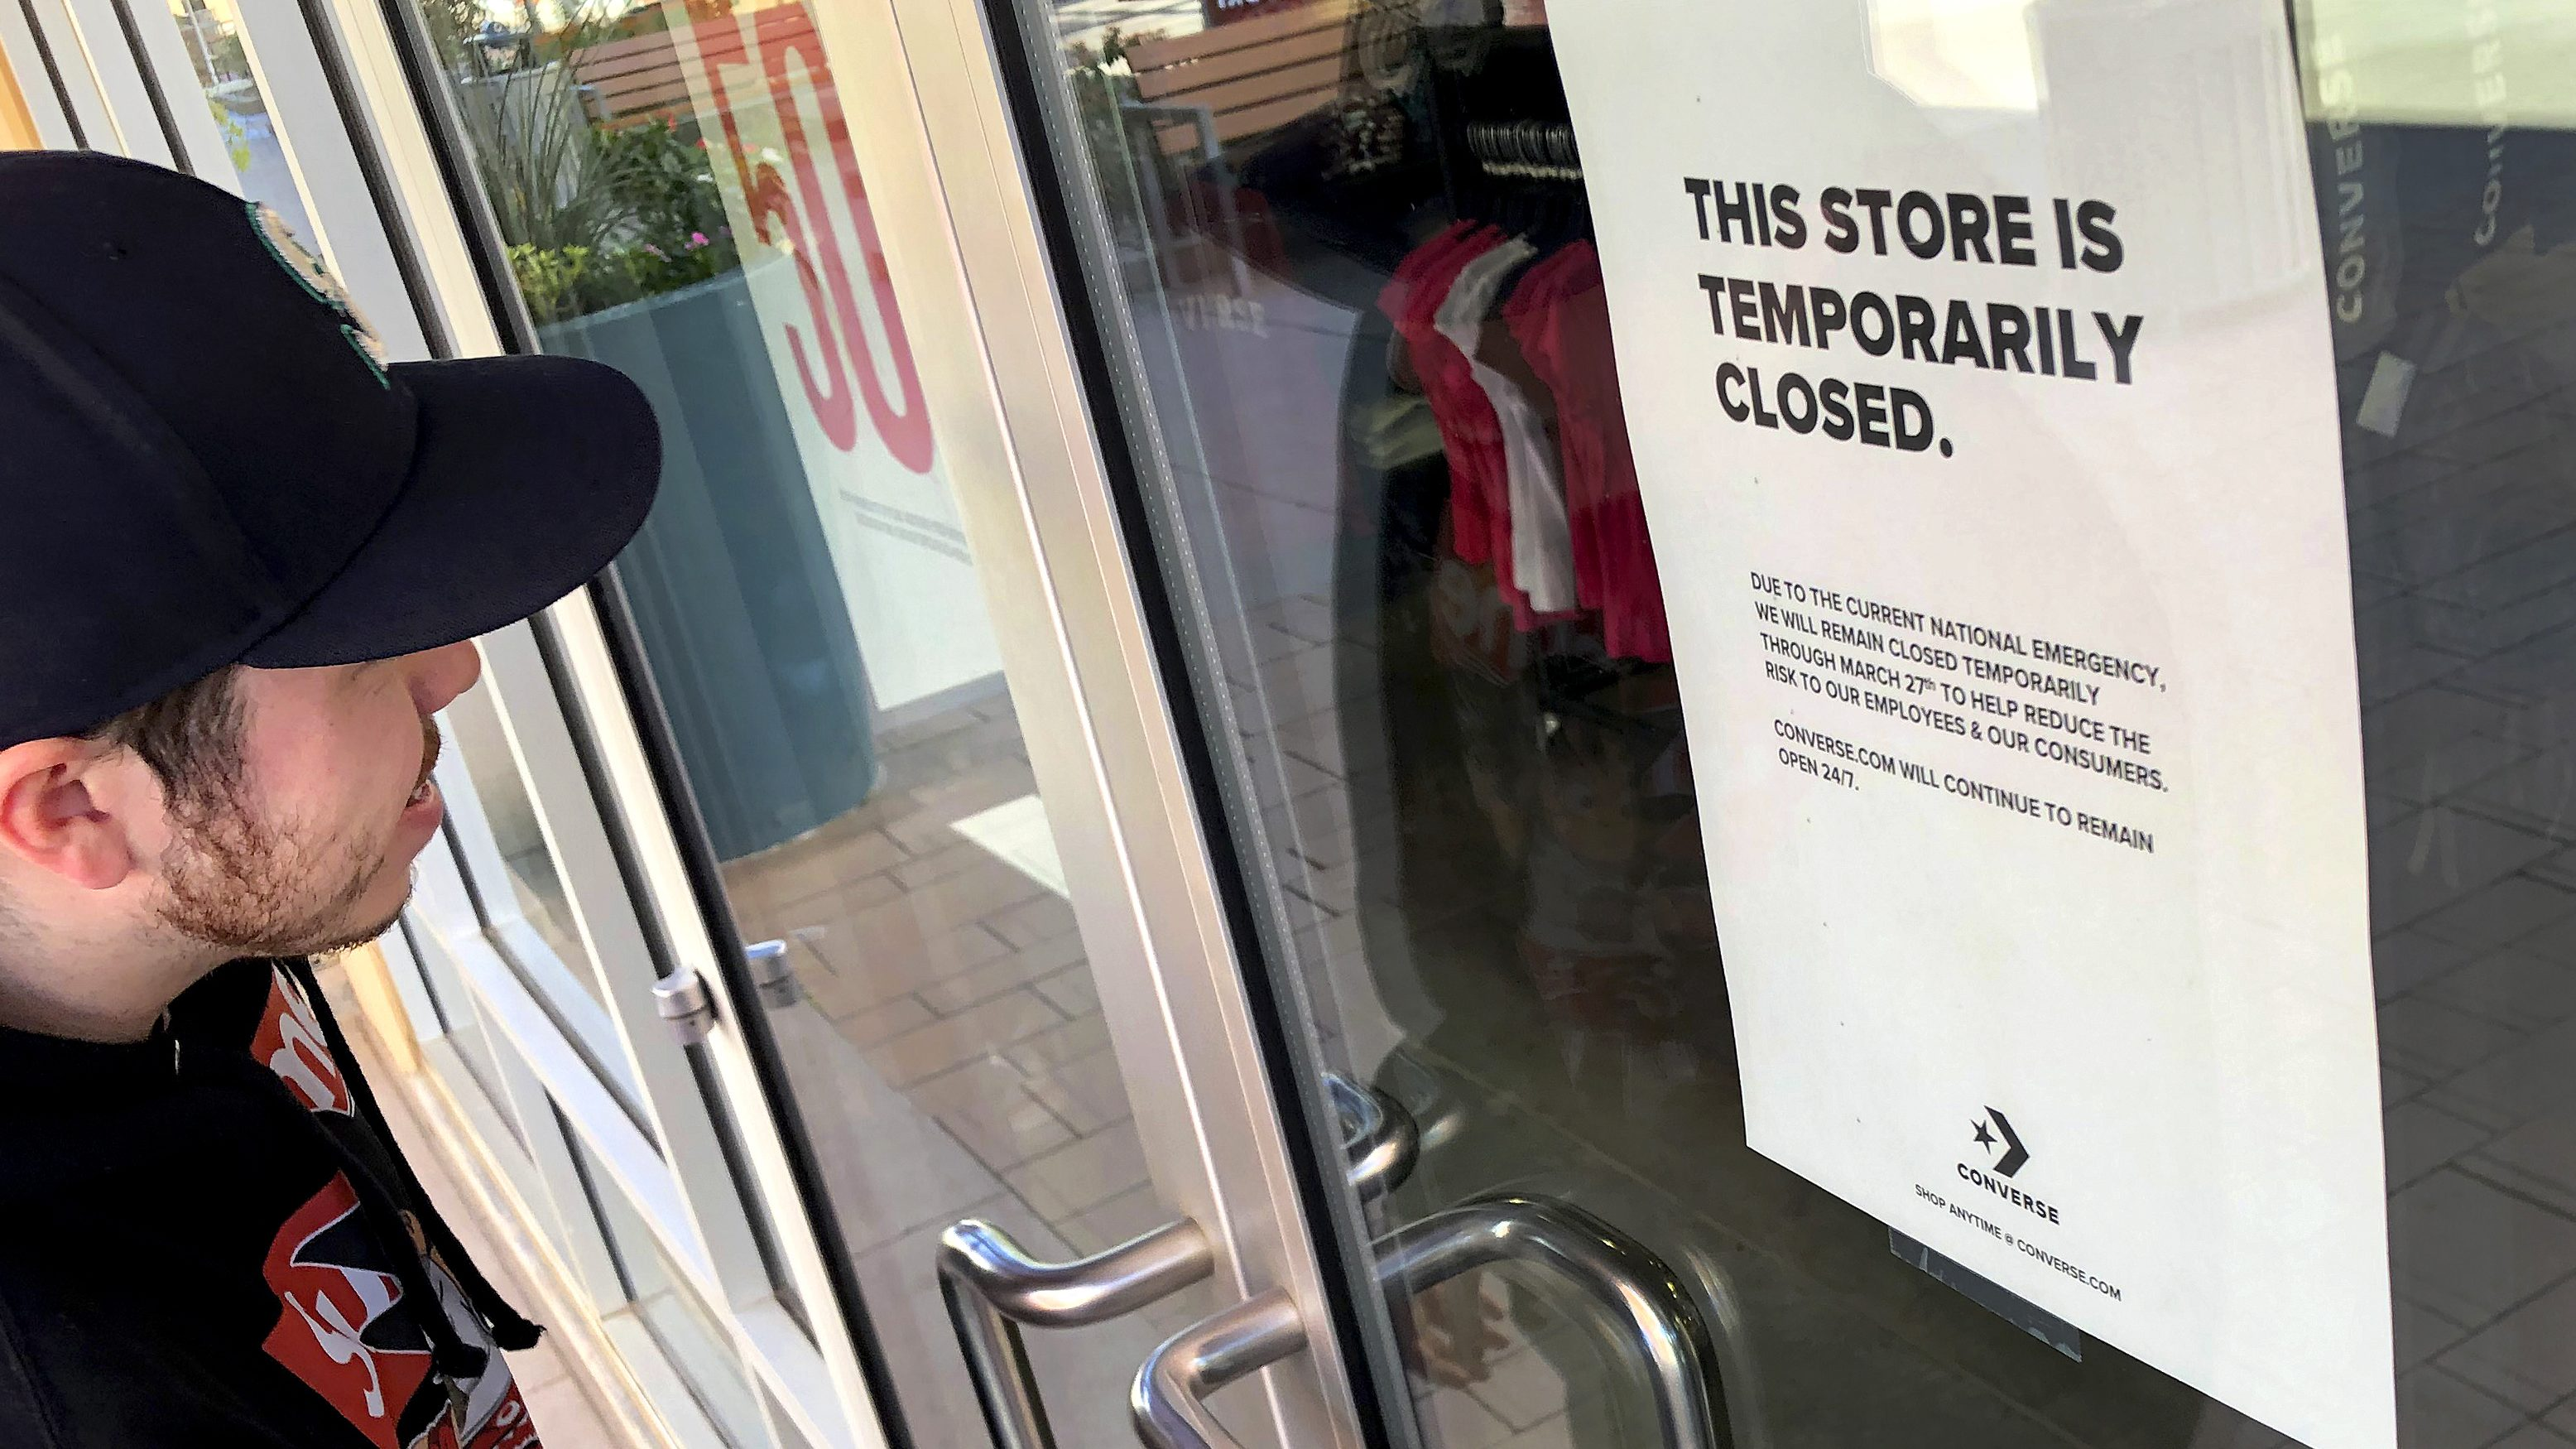 An employee enters a closed Converse shoe store Monday, March 15, 2020, in Phoenix